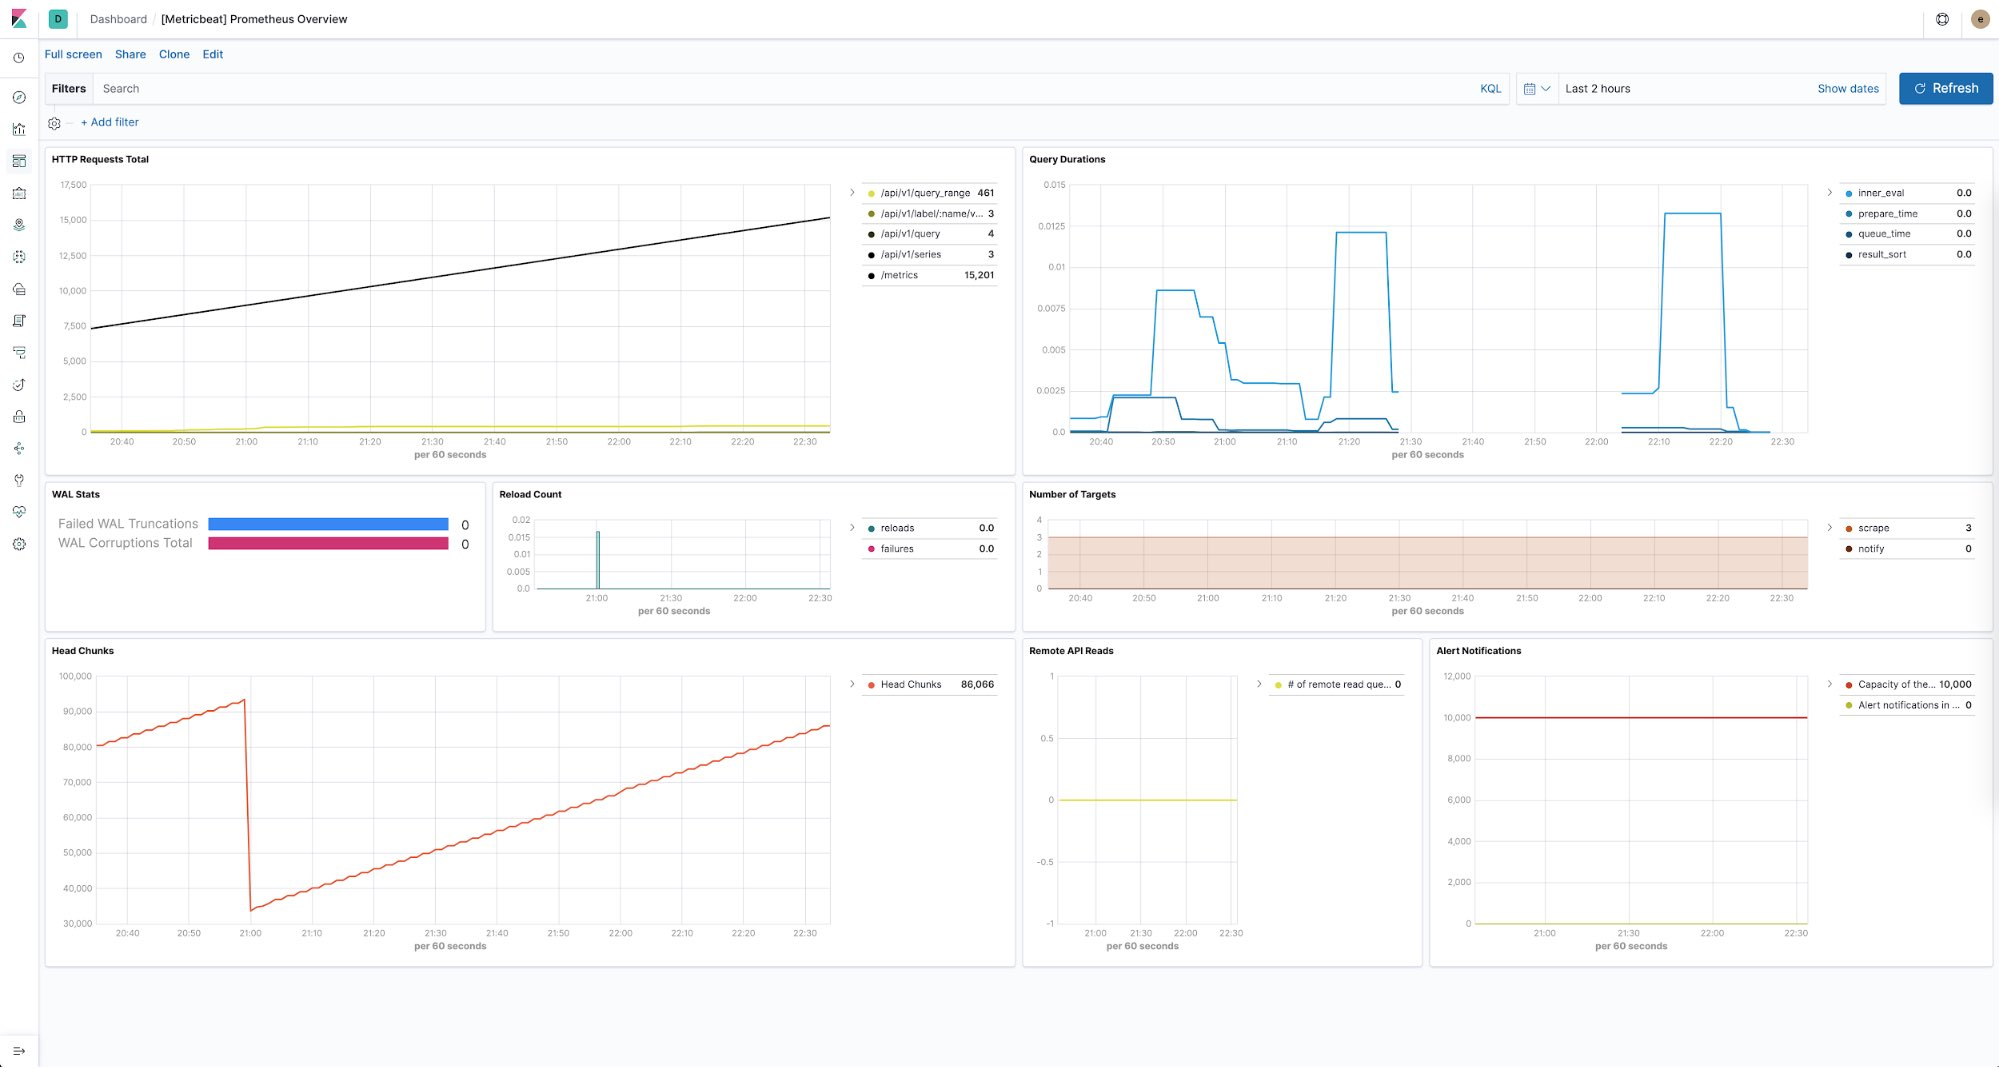 Dashboard de monitoramento do Prometheus no Kibana